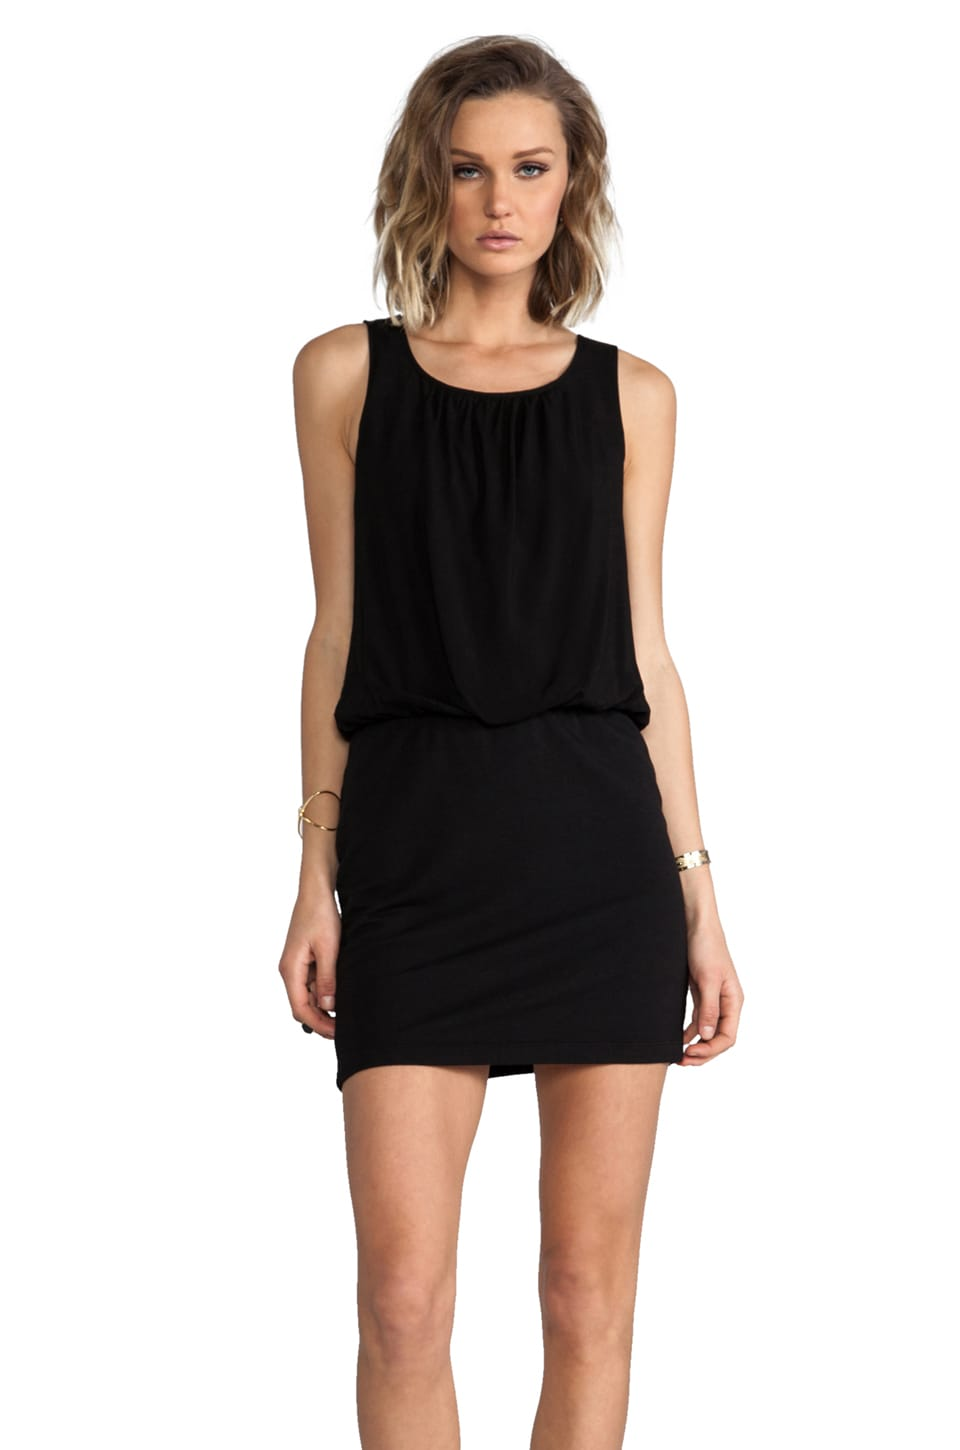 Splendid Rayon Sleeveless Dress in Black